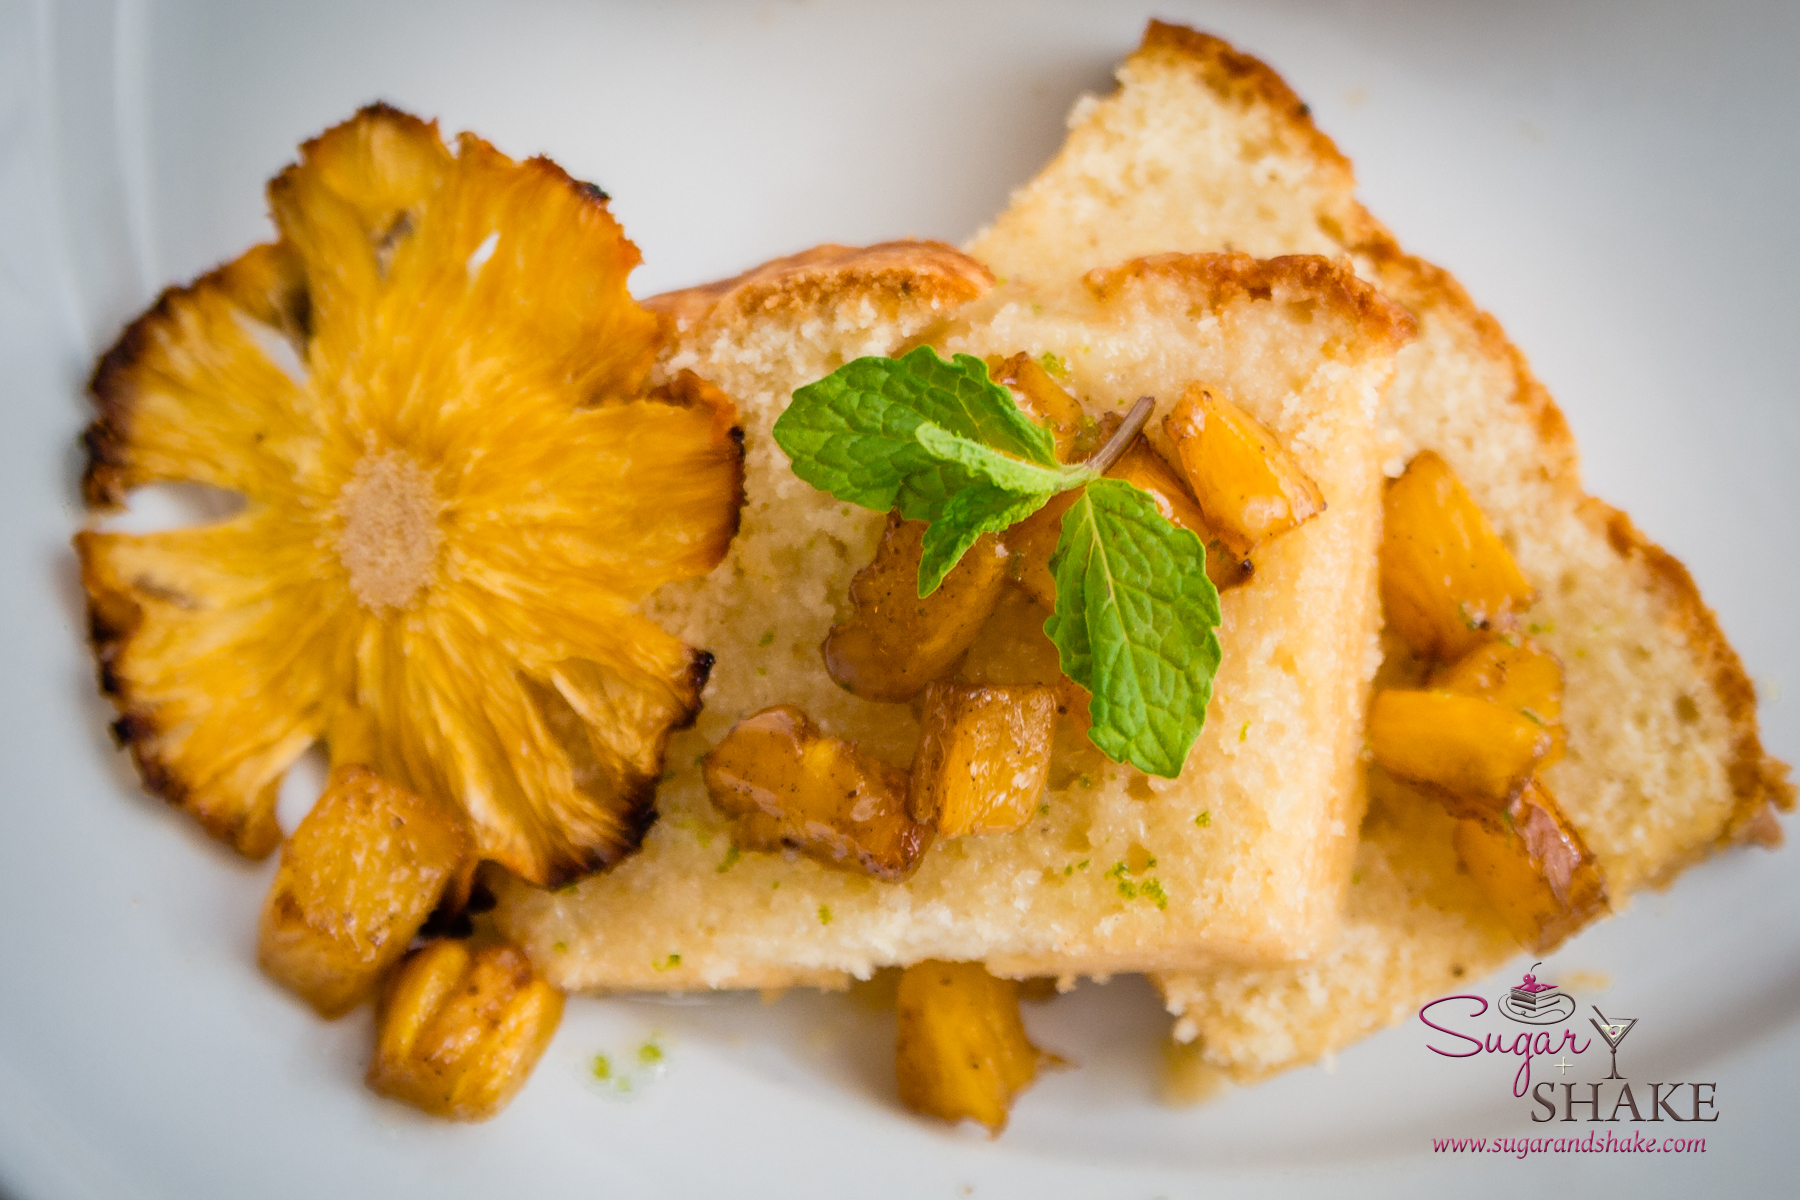 Kaffir Lime Vanilla Pound Cake with Kaffir Lime Glaze and Roasted Rum Pineapple. © 2014 Sugar + Shake